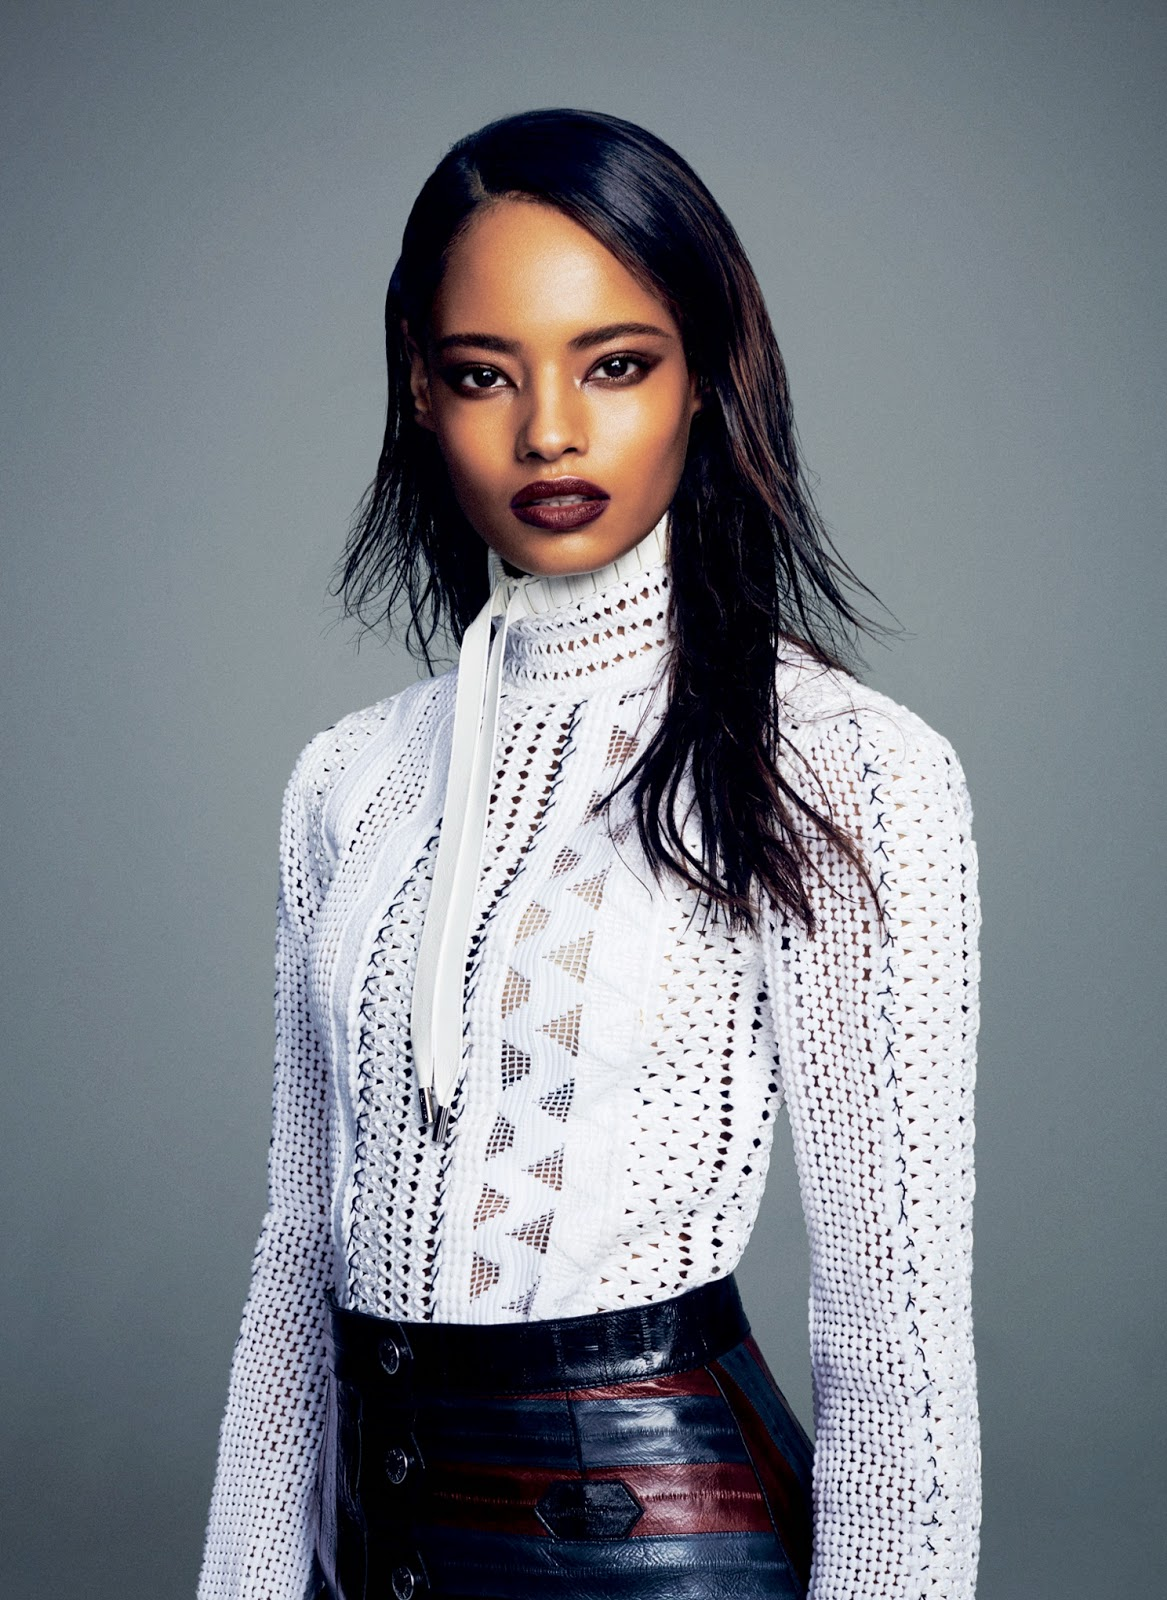 This year's model: Fashion Model @ Malaika Firth in pictures